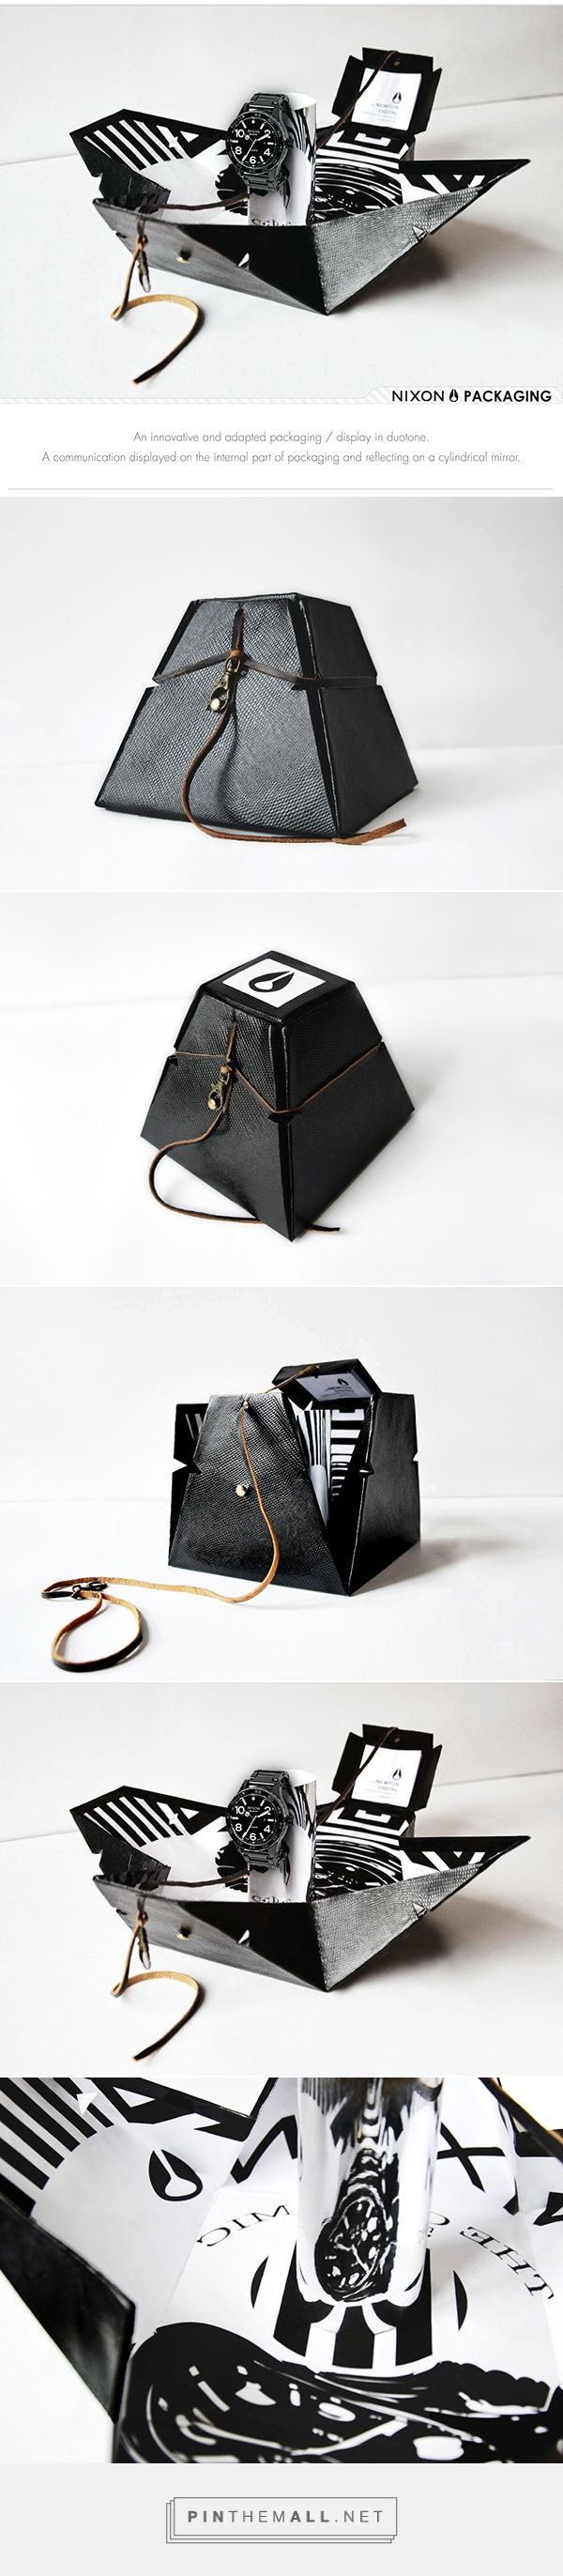 Nixon - Packaging / Display on Behance... - a grouped images picture - Pin Them…